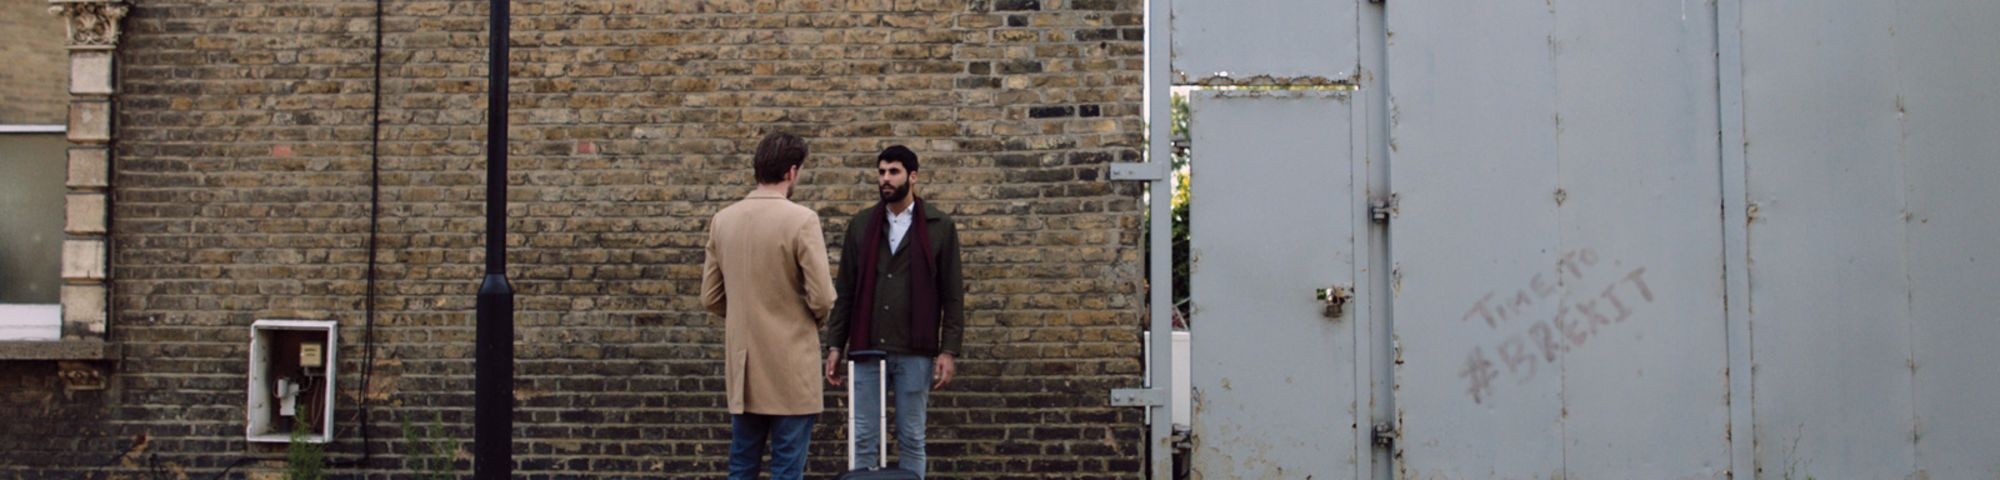 Two men stand and have a conversation in a residential street, one with a suitcase